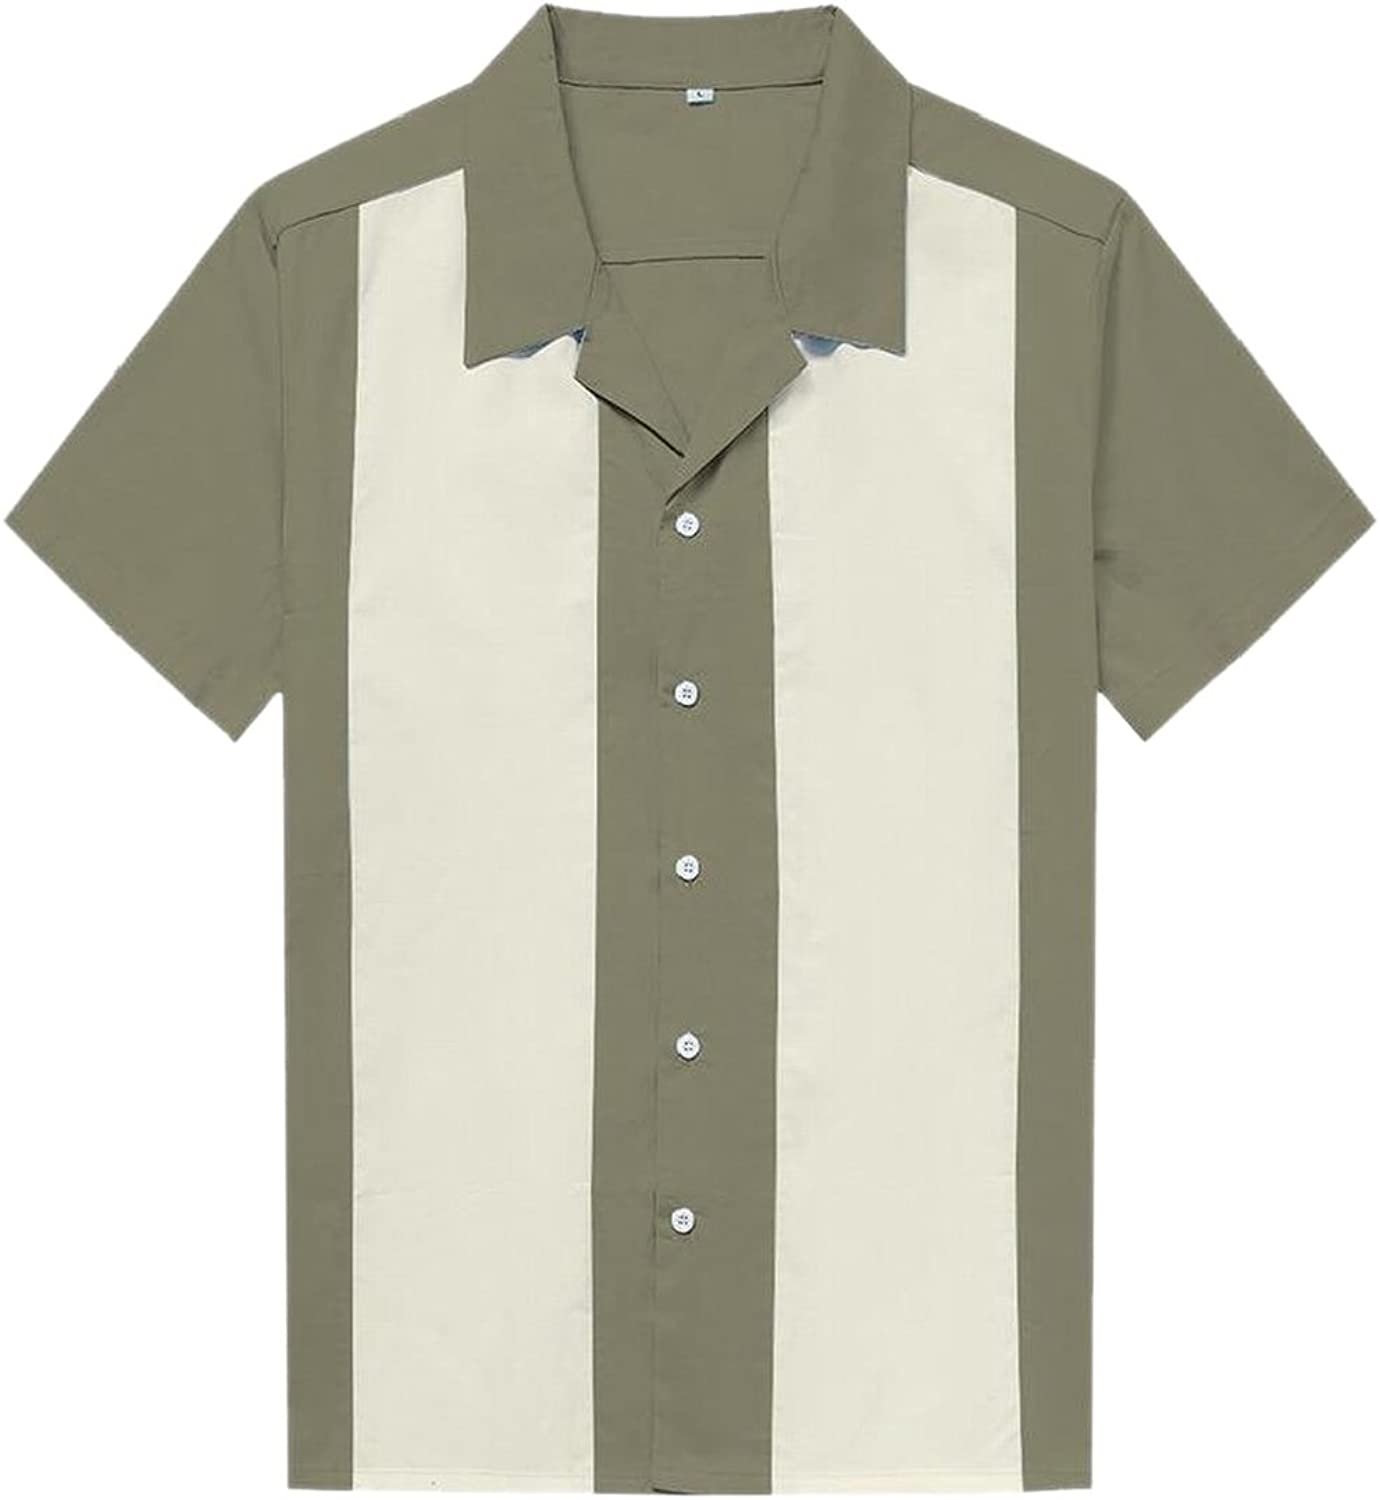 - Generic Mens 50s Male Clothing Rockabilly Style Casual Short Short Short Sleeves Shirt f24672